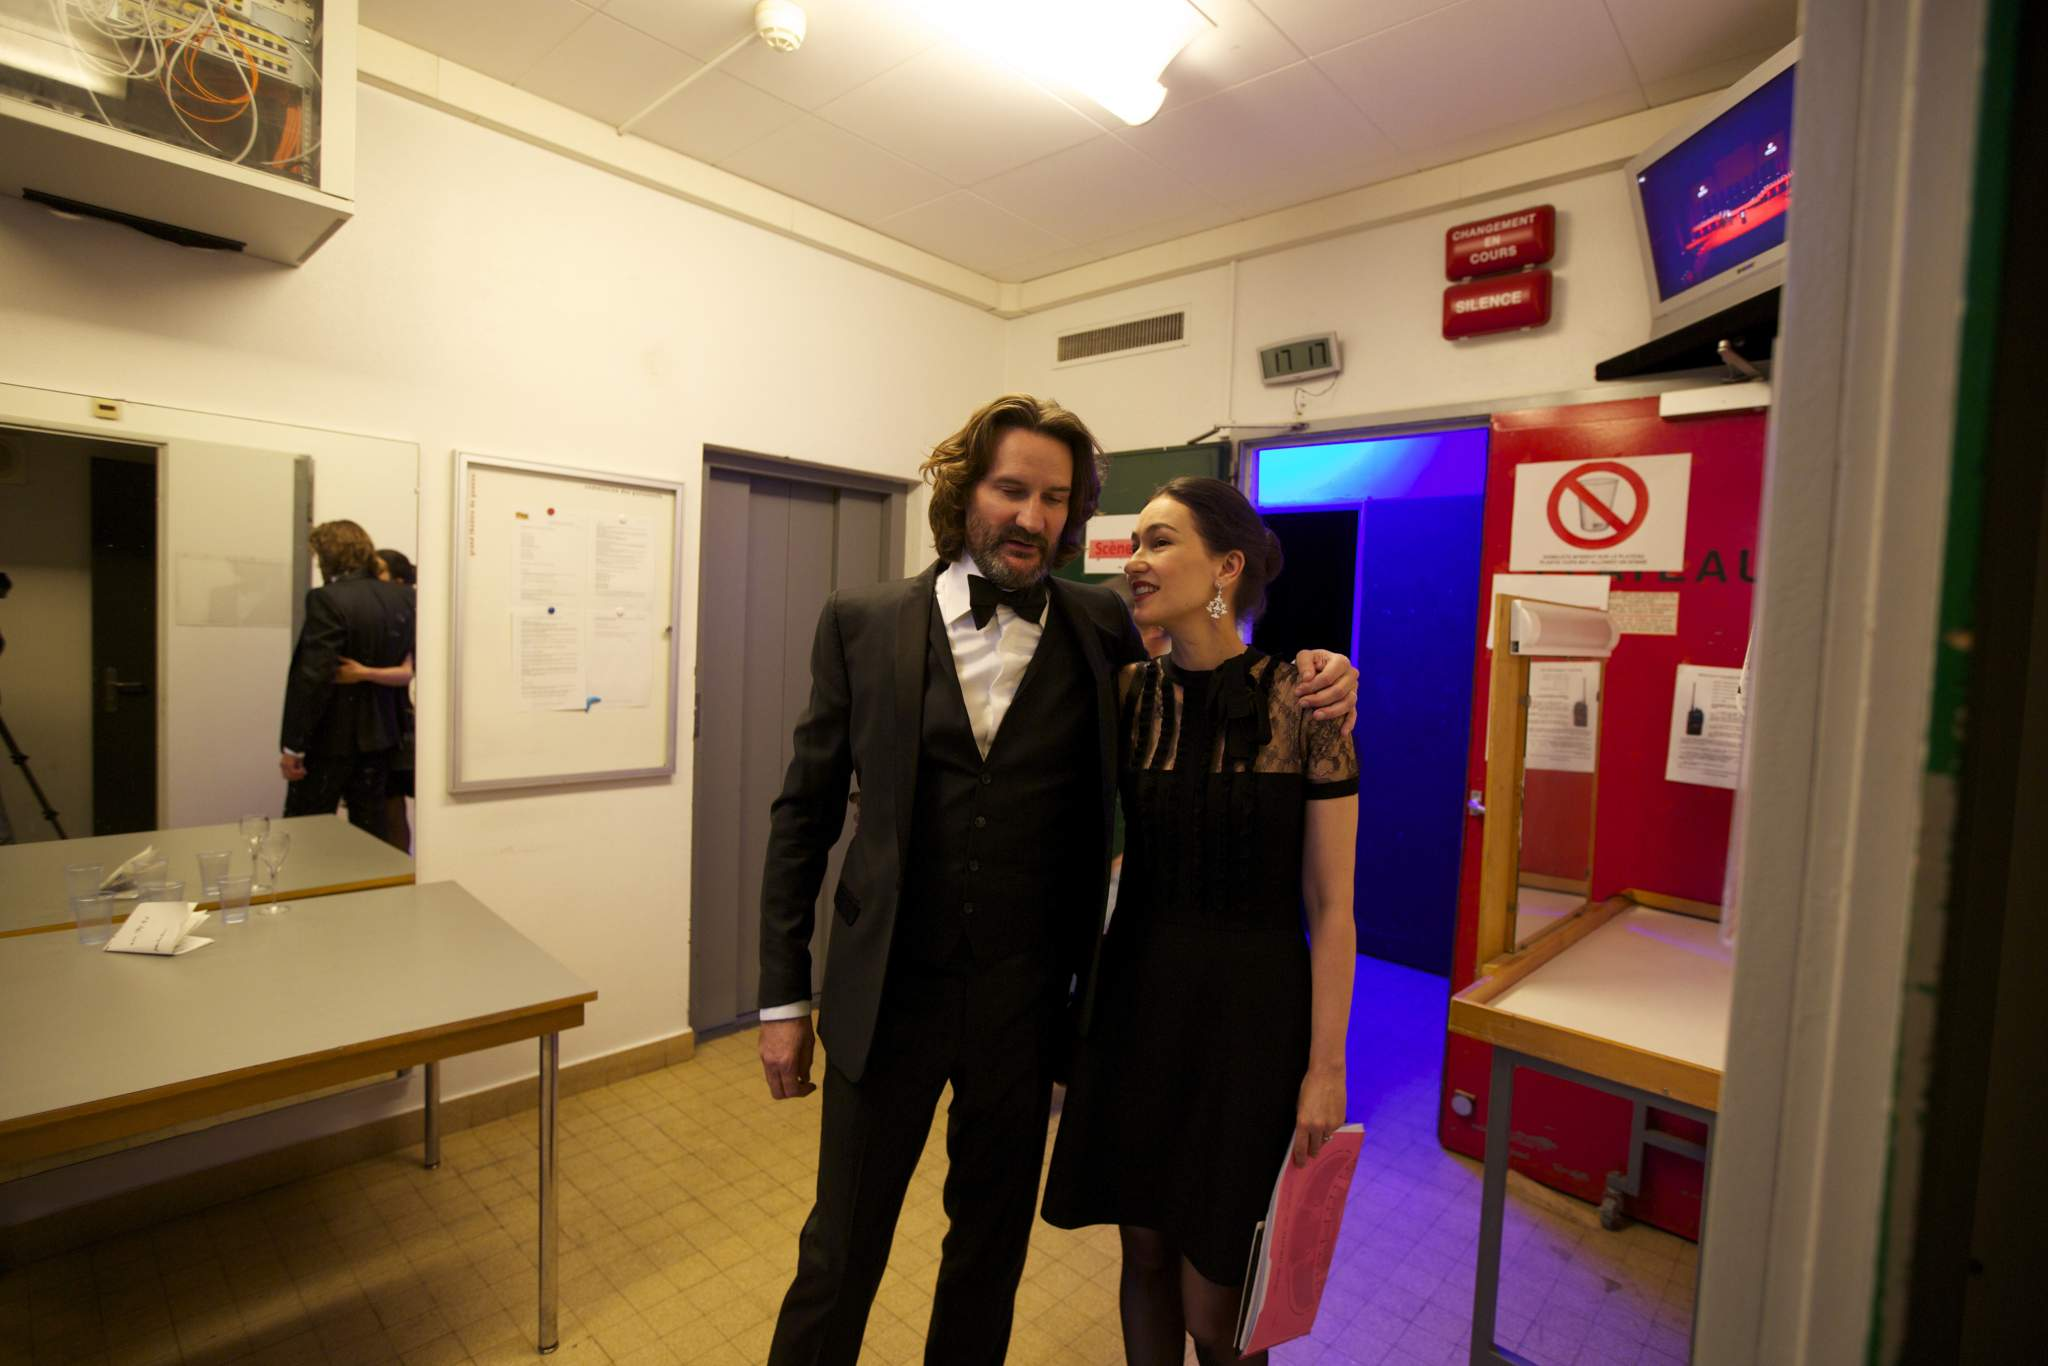 Frédéric Beigbeder (MC of the prize-giving ceremony of the GPHG 2015) and Carine Maillard (Director of the Foundation of the GPHG)